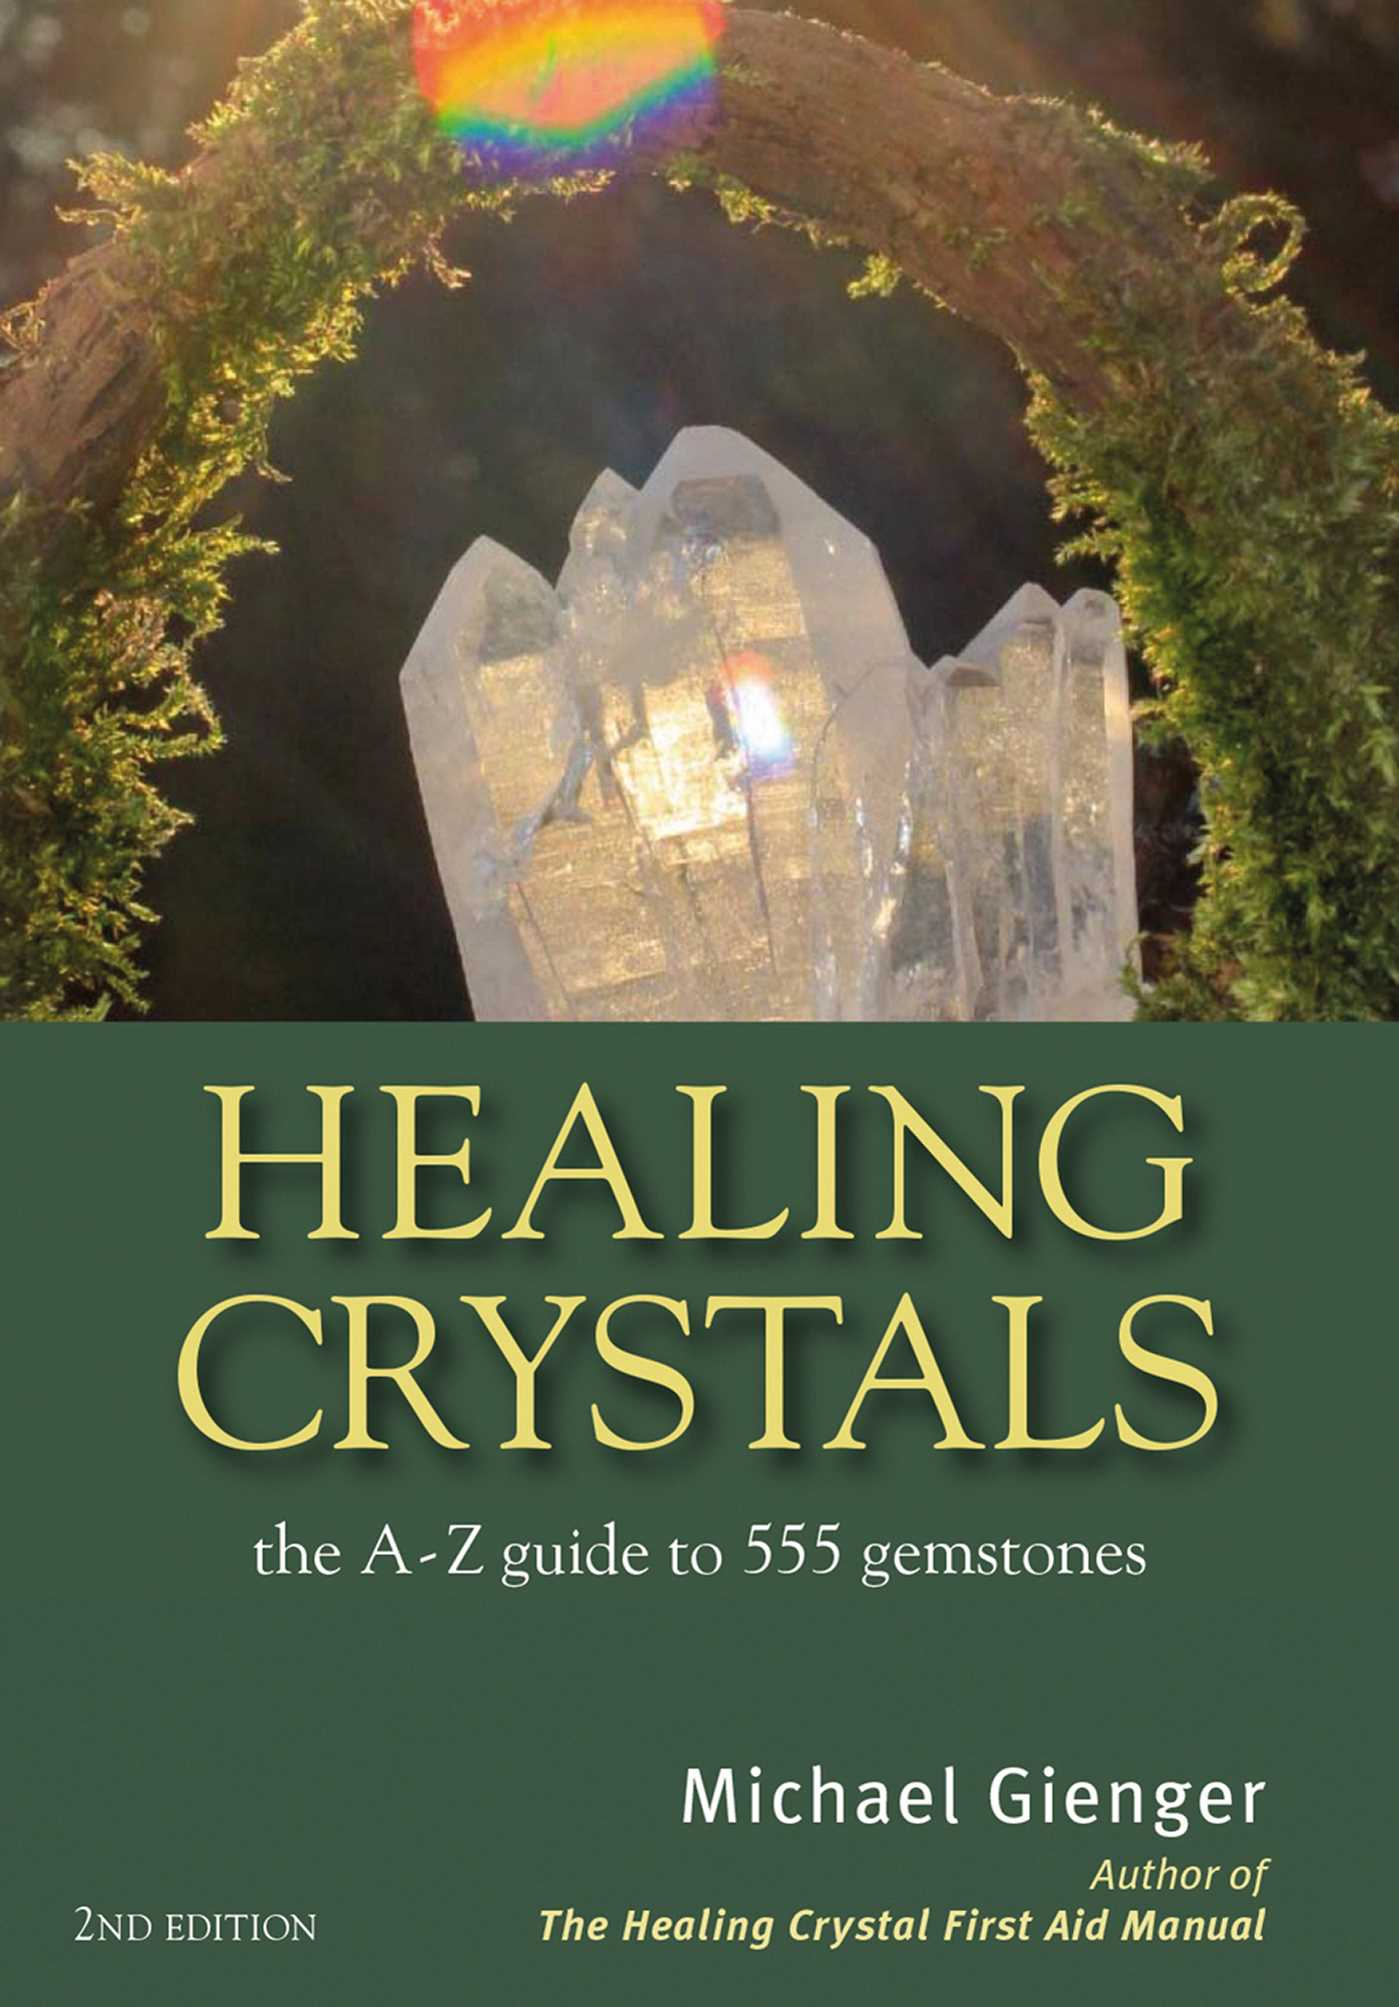 First aid manual ebook array healing crystals ebook by michael gienger official publisher page rh simonandschuster ca fandeluxe Gallery